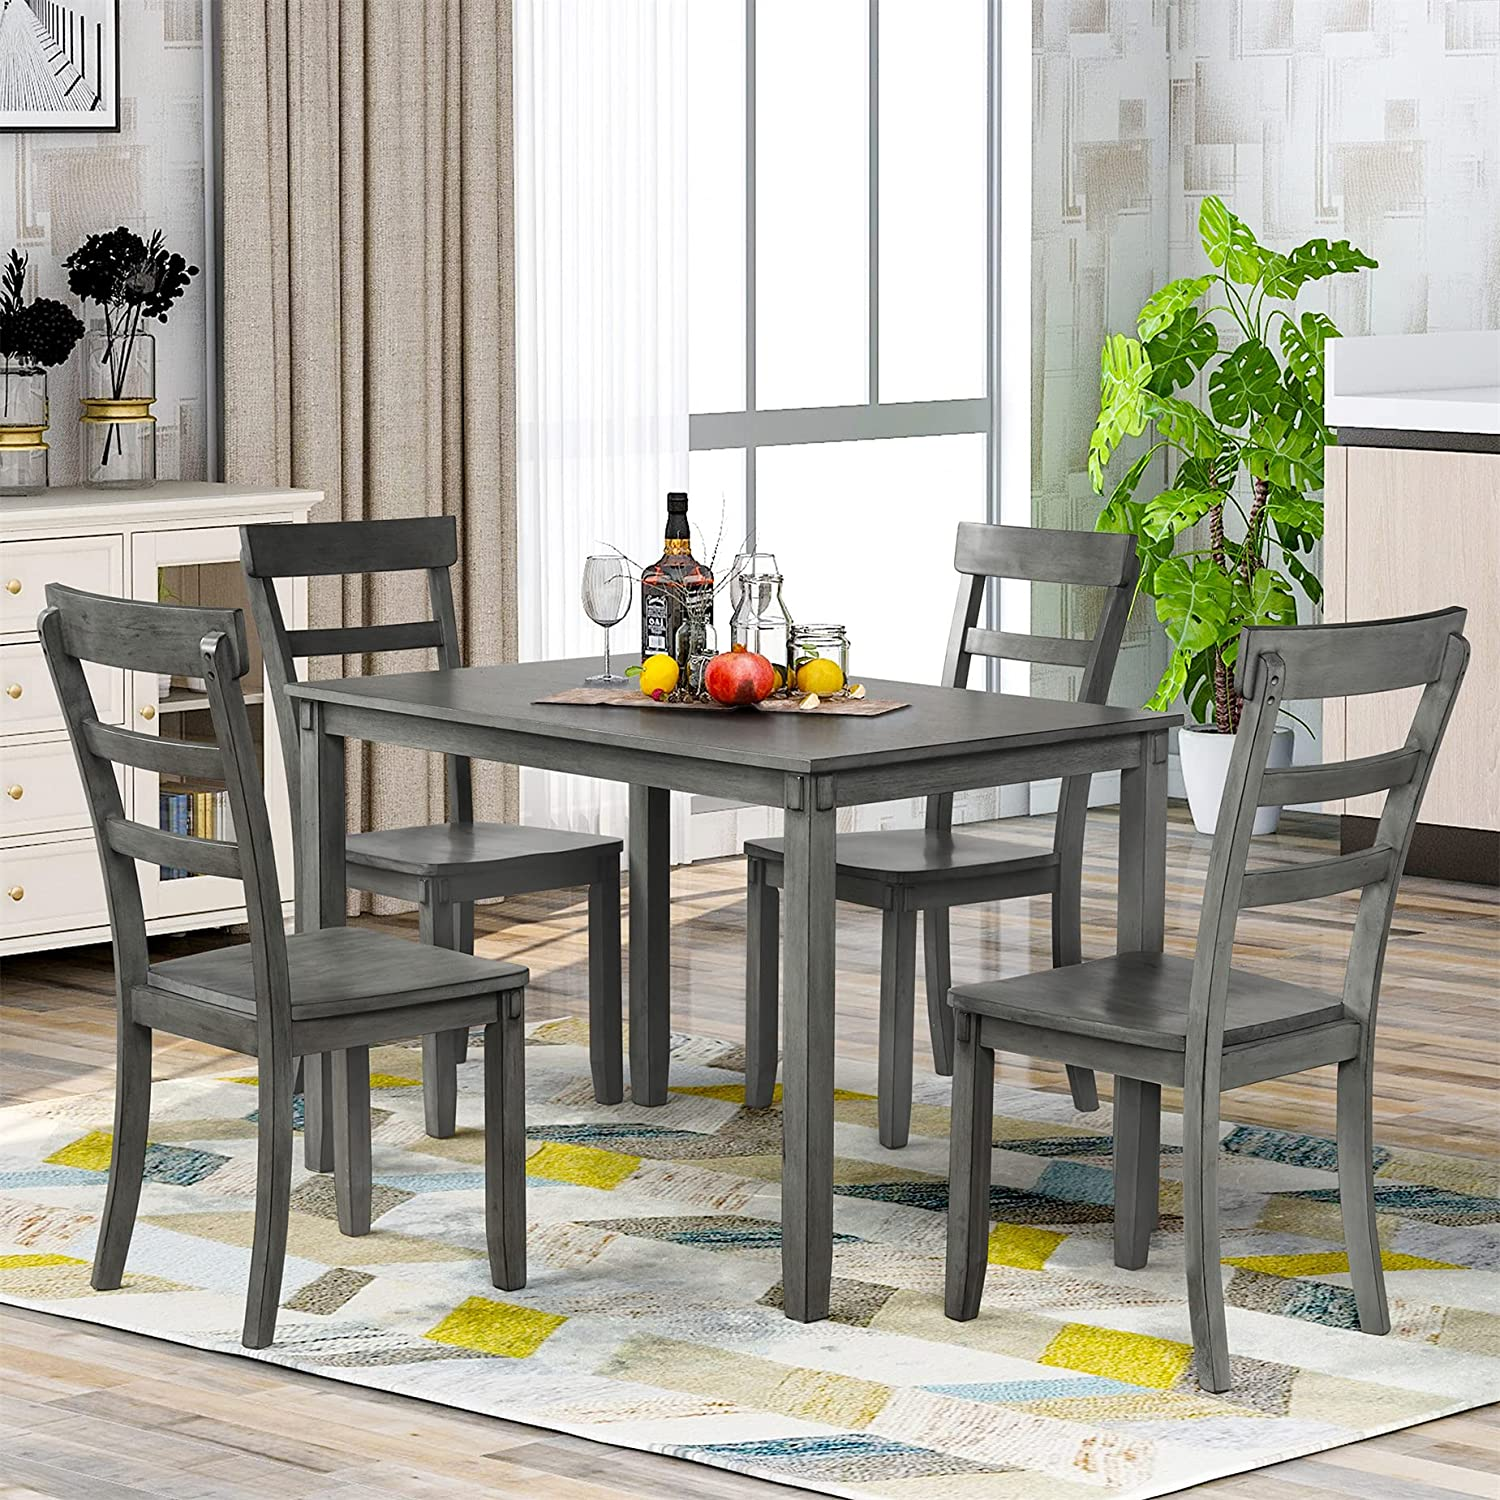 Dining Table Set Kitchen WoodenDinin 5Piece Miami Mall Super-cheap